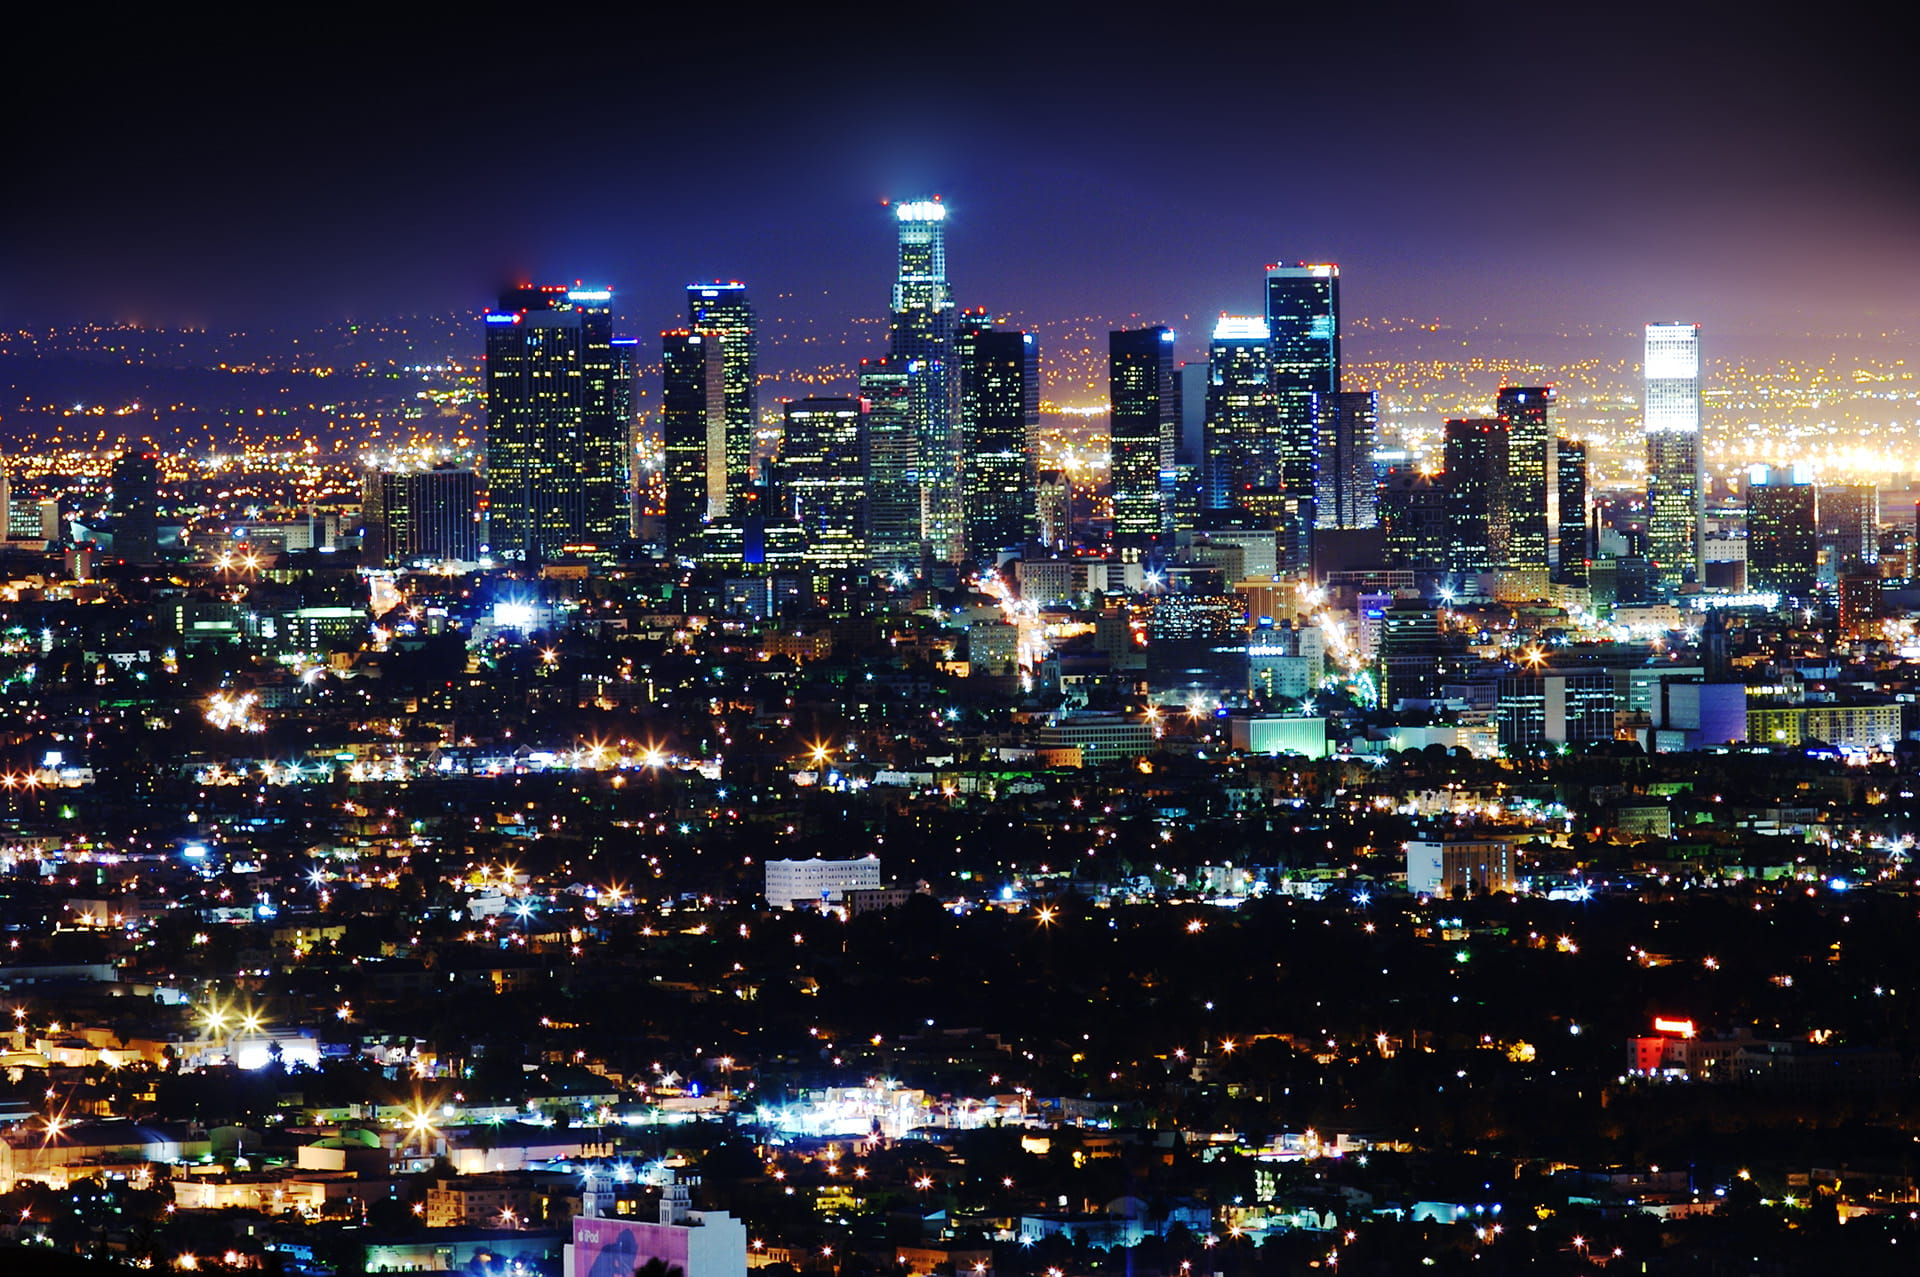 Aerial view of Los Angeles at Night